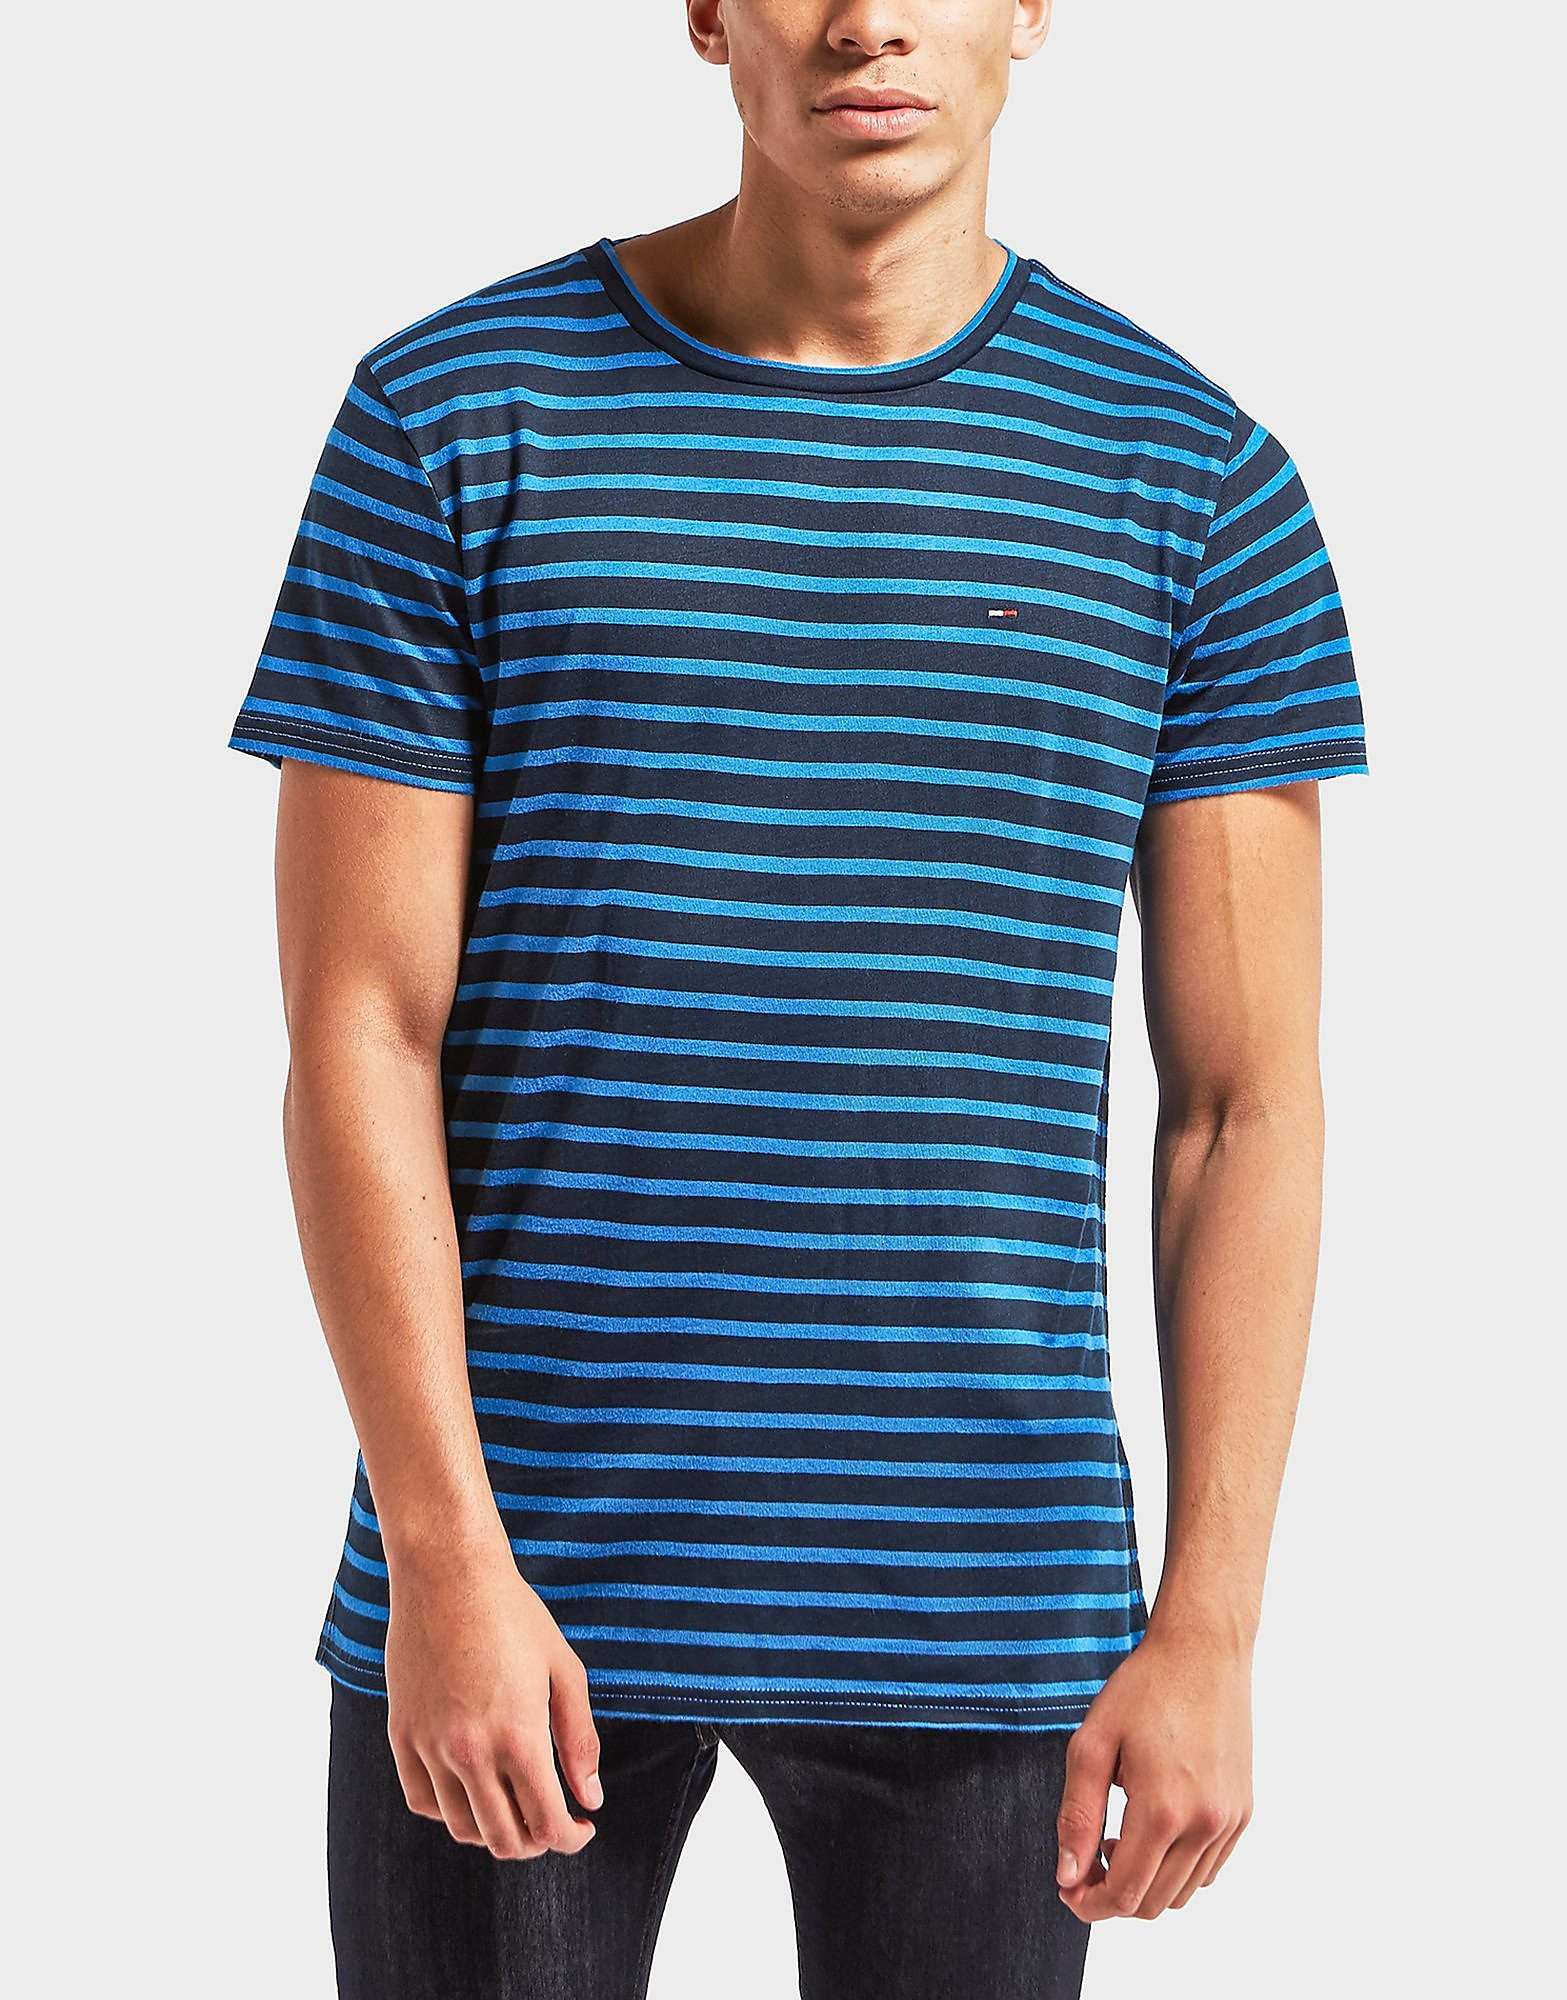 Tommy Hilfiger Striped Short Sleeve T-Shirt